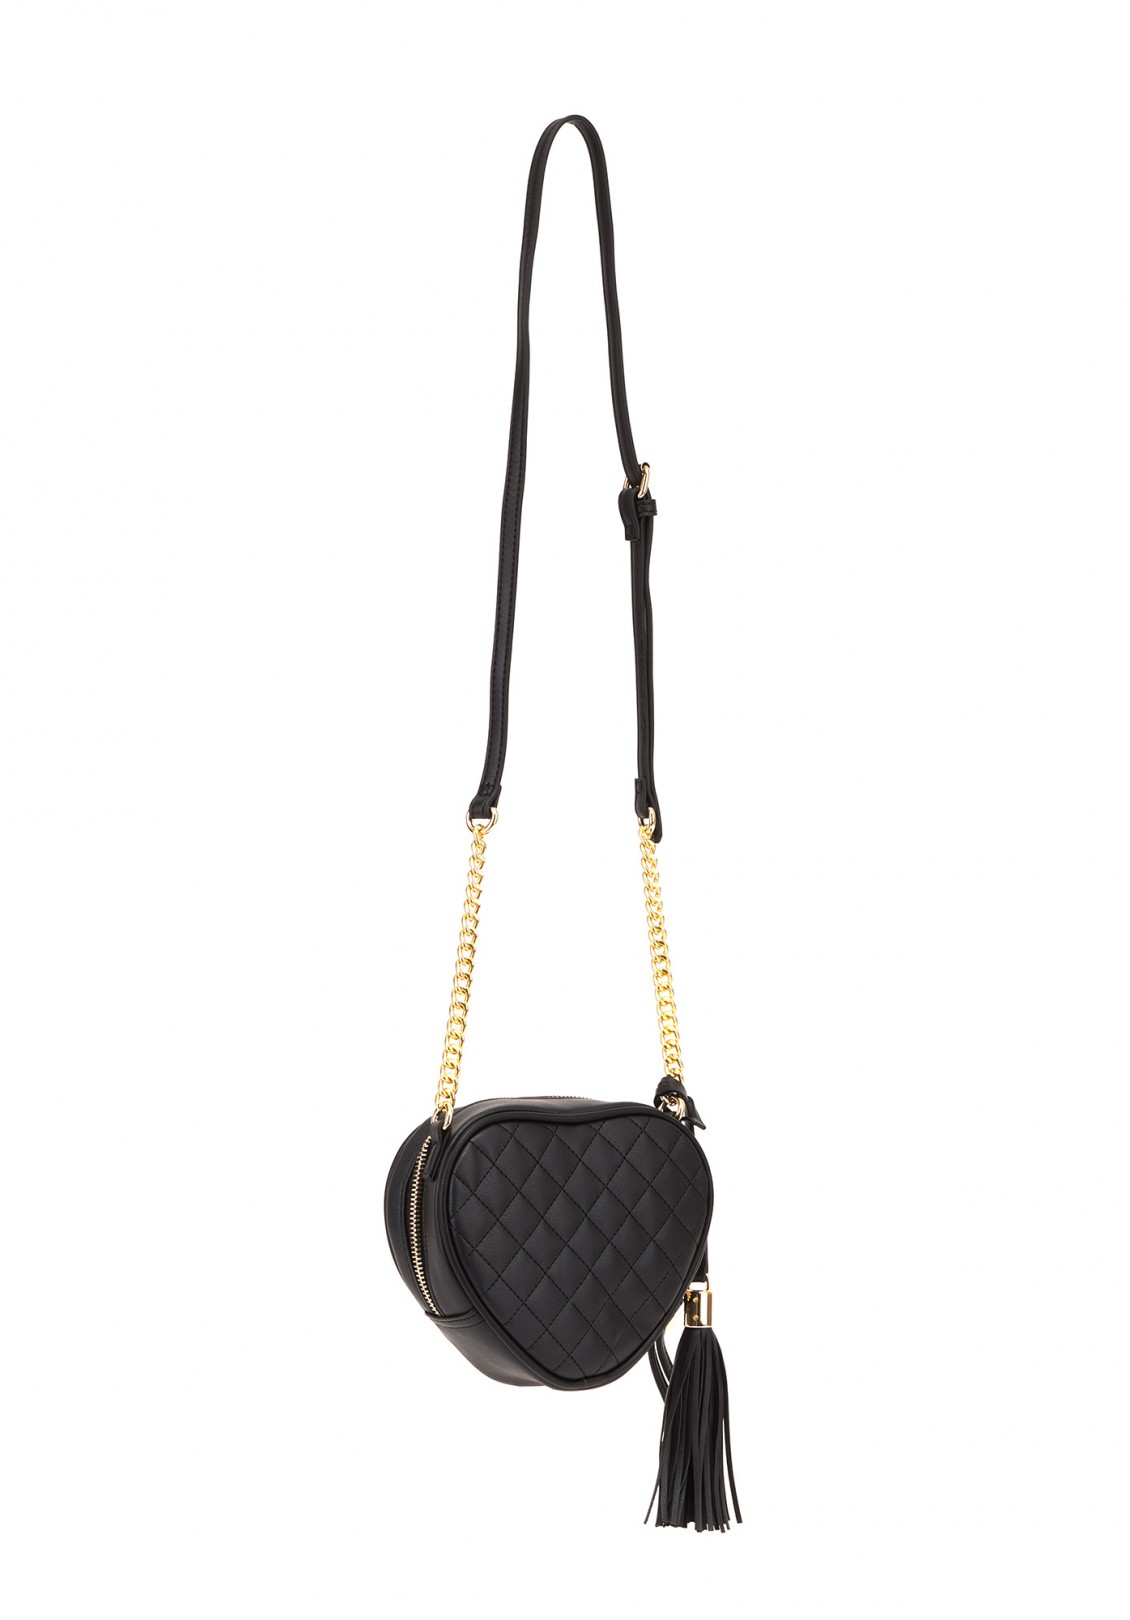 SHOULDER BAG - GBDA1935 - GAELLE PARIS